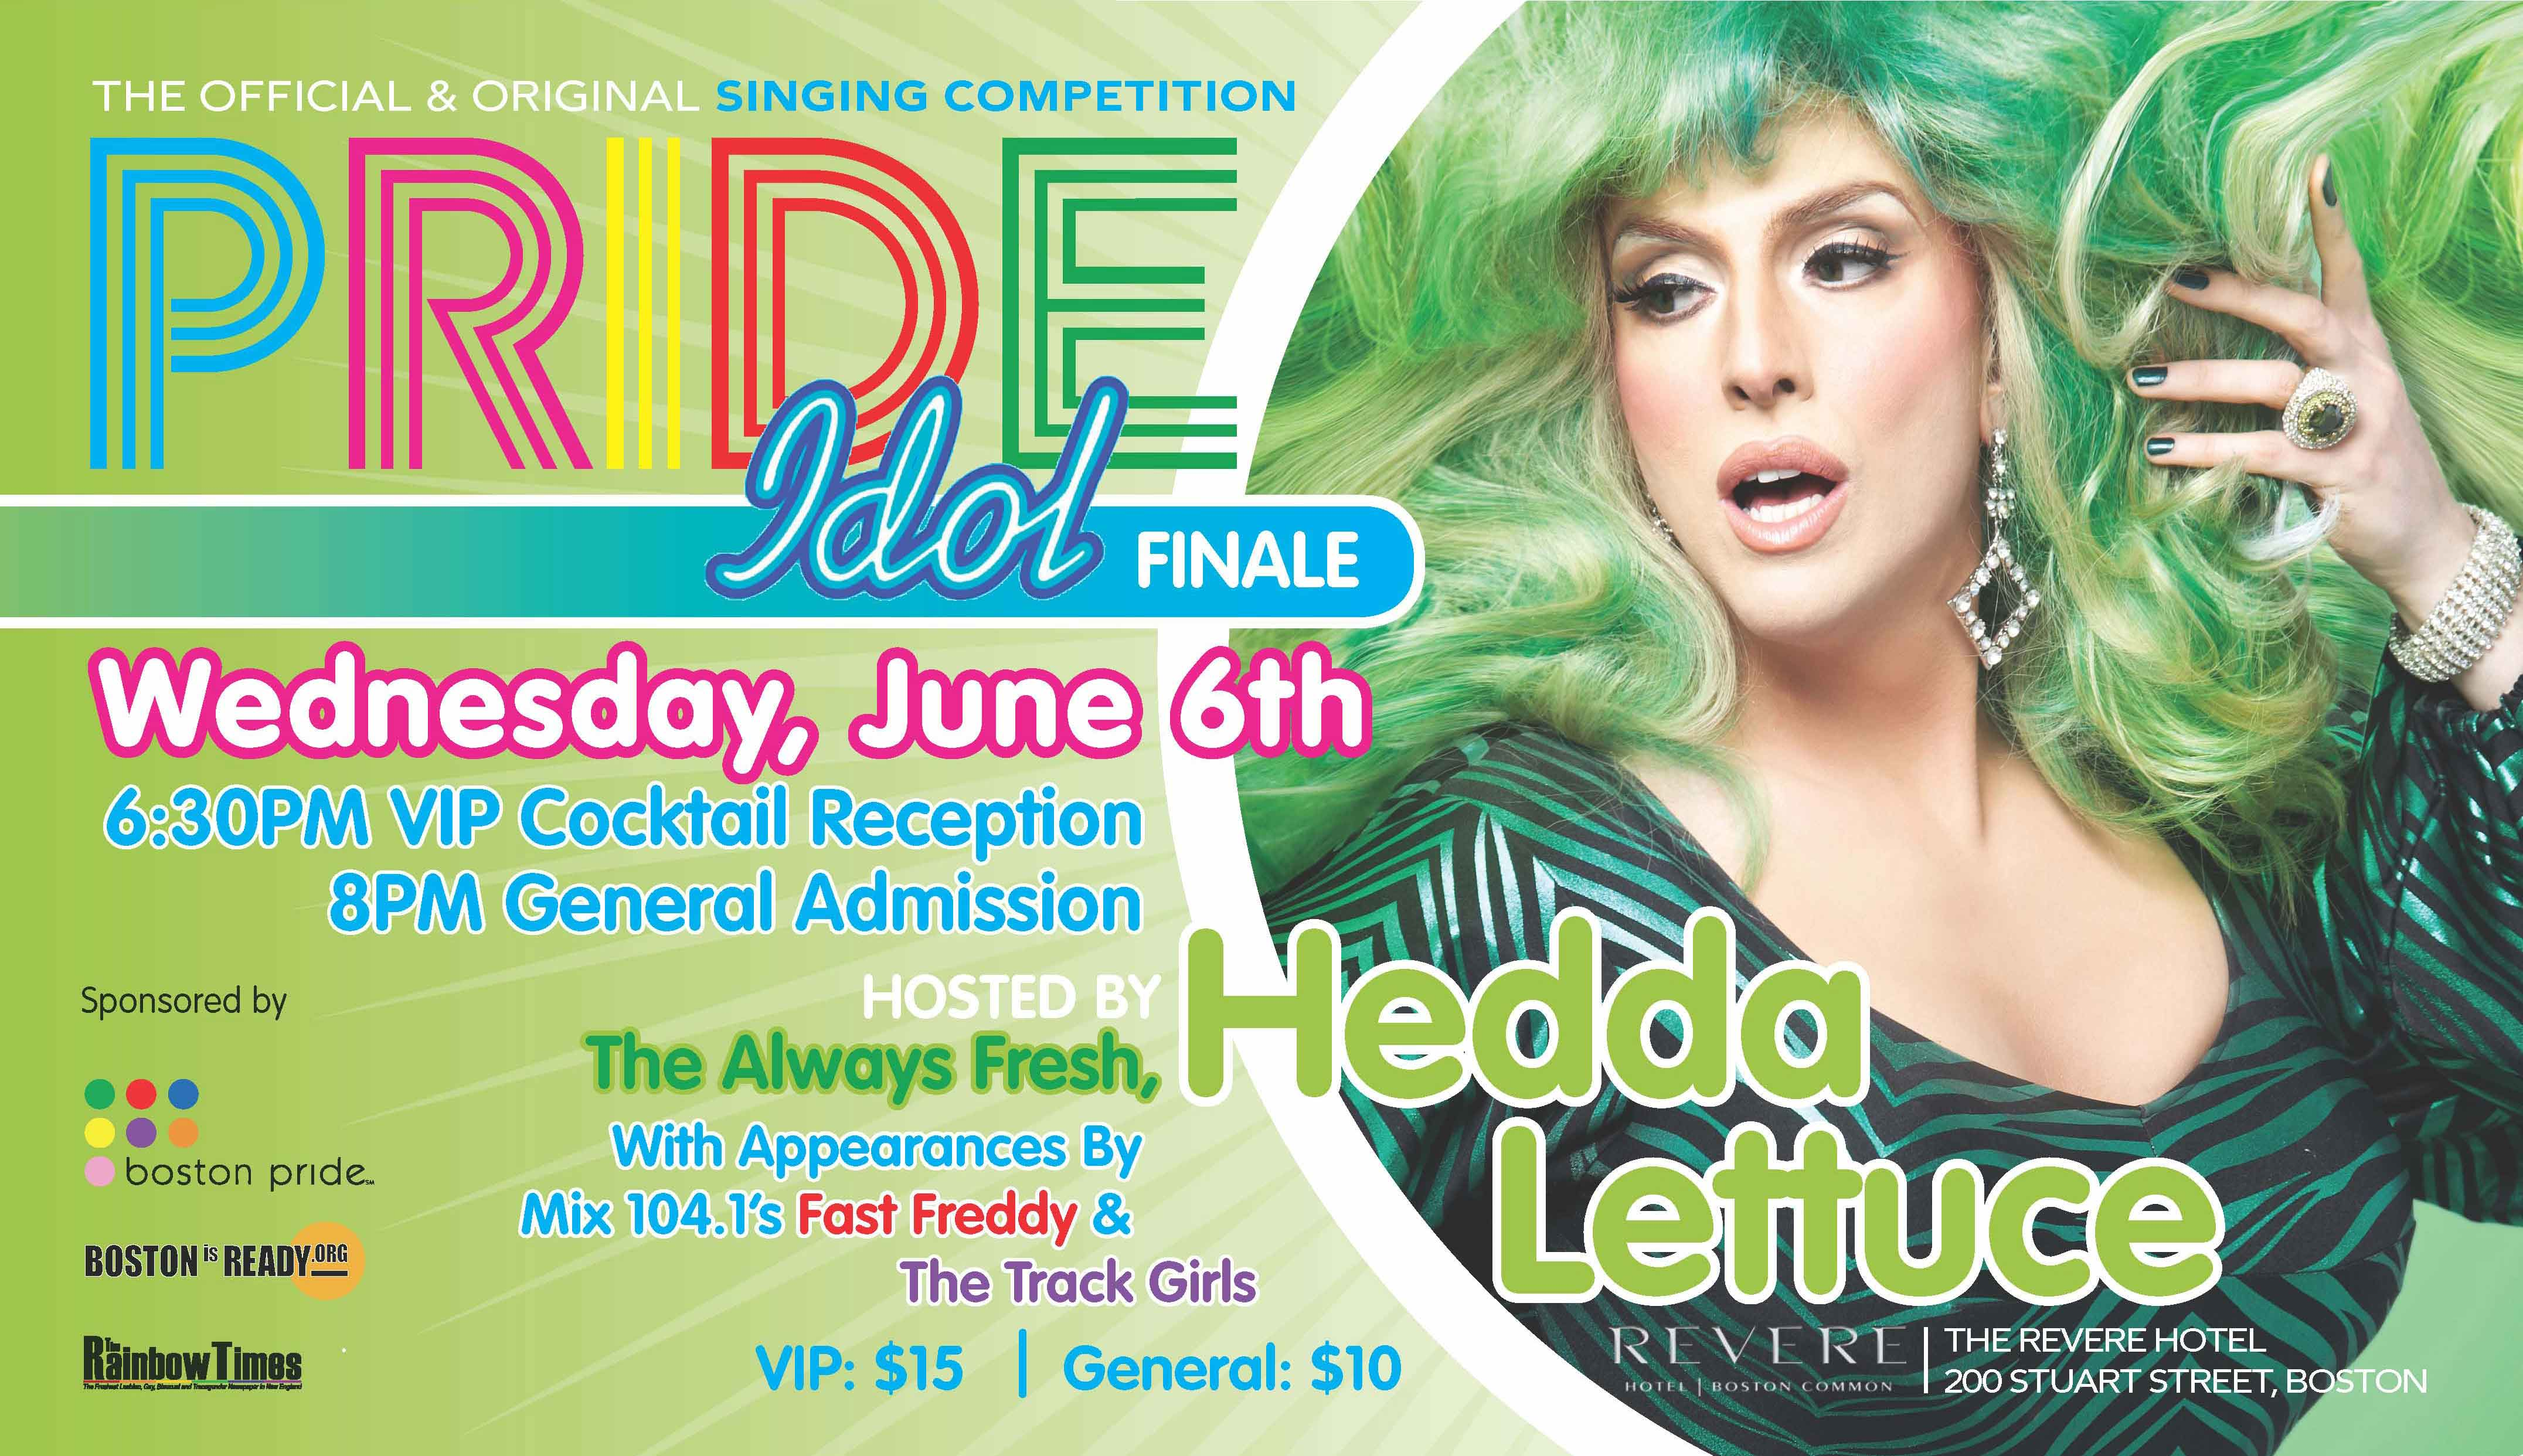 Pride Idol Finale with Hedda Lettuce